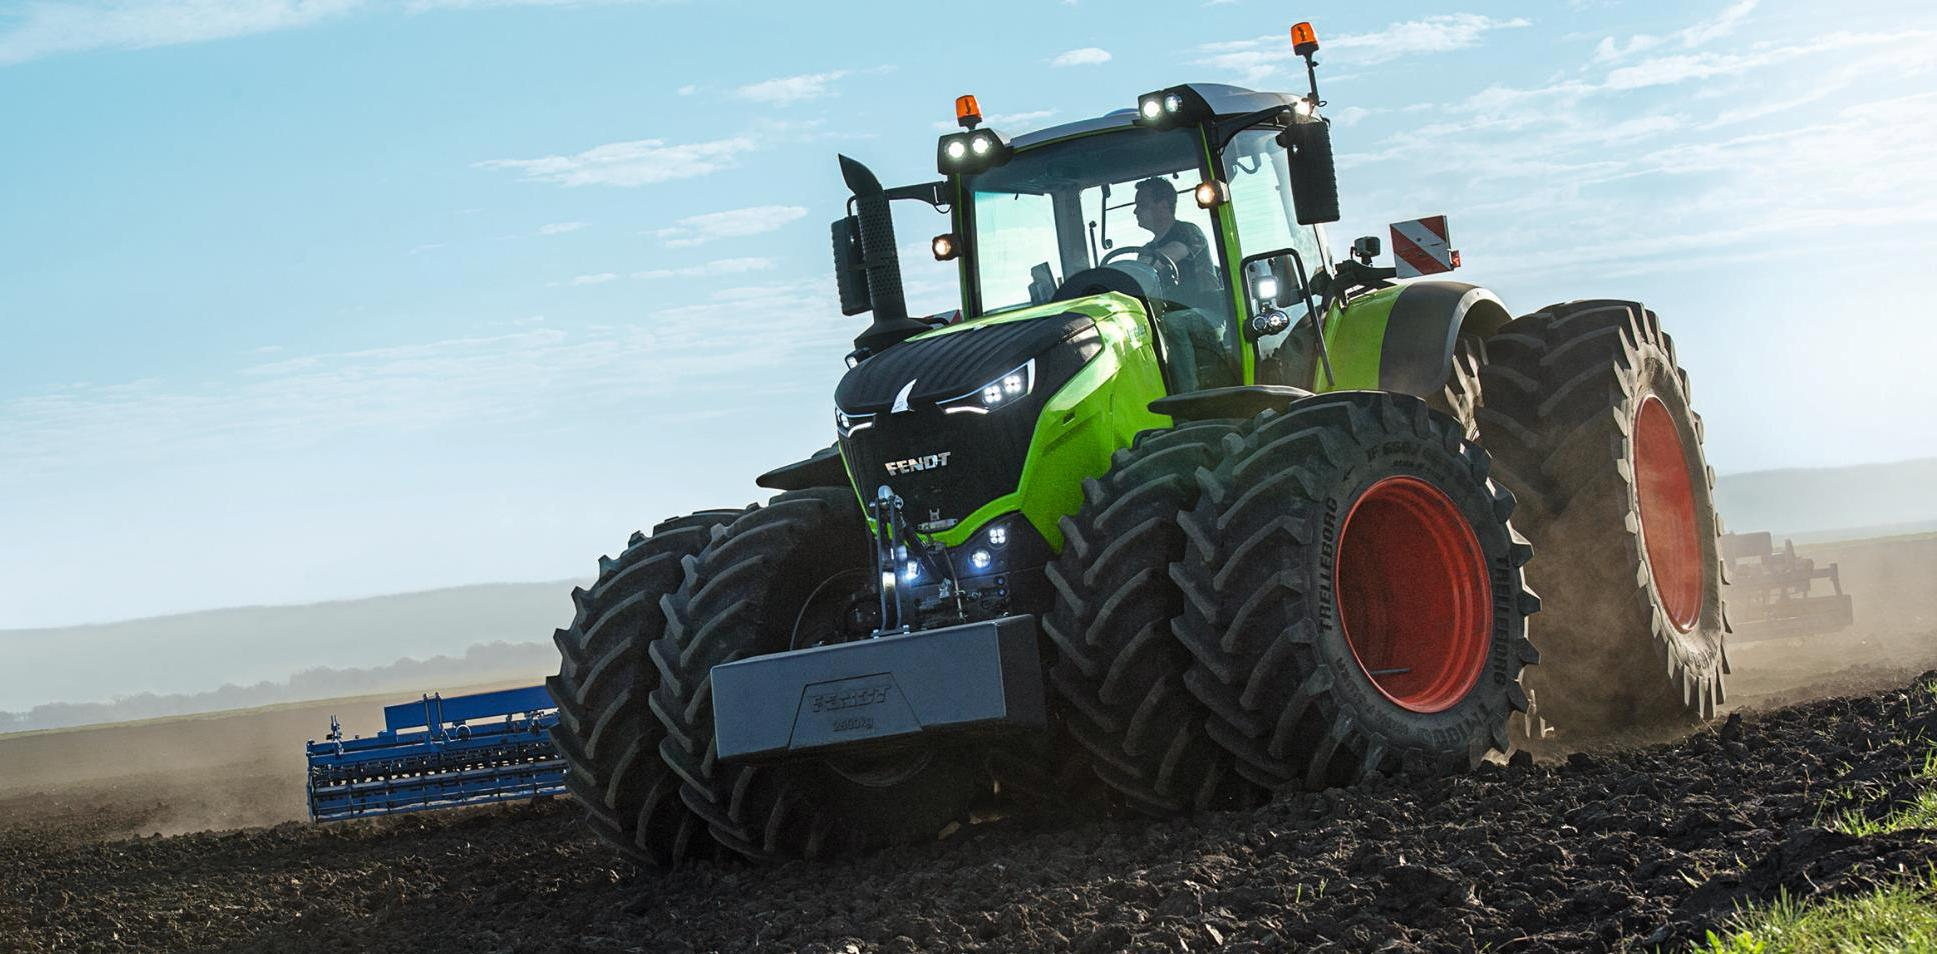 Lieblings Kuban farmer became the first owner of the tractor Fendt 1050 @GG_86